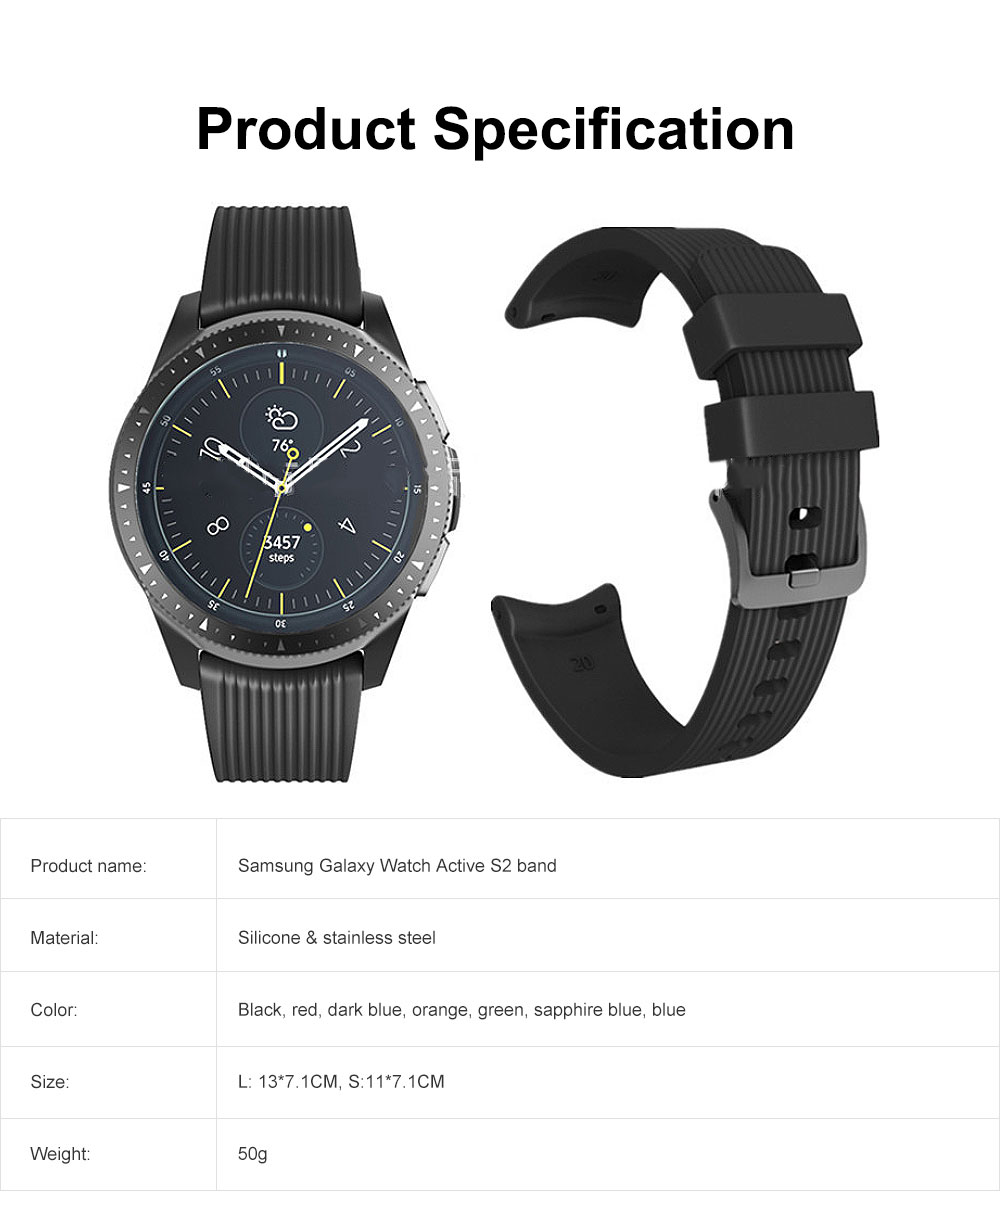 42mm Replacement Wristwatch Strap Soft Silicone Band with Stainless Steel Buckle for Samsung Galaxy Watch Active S2 6